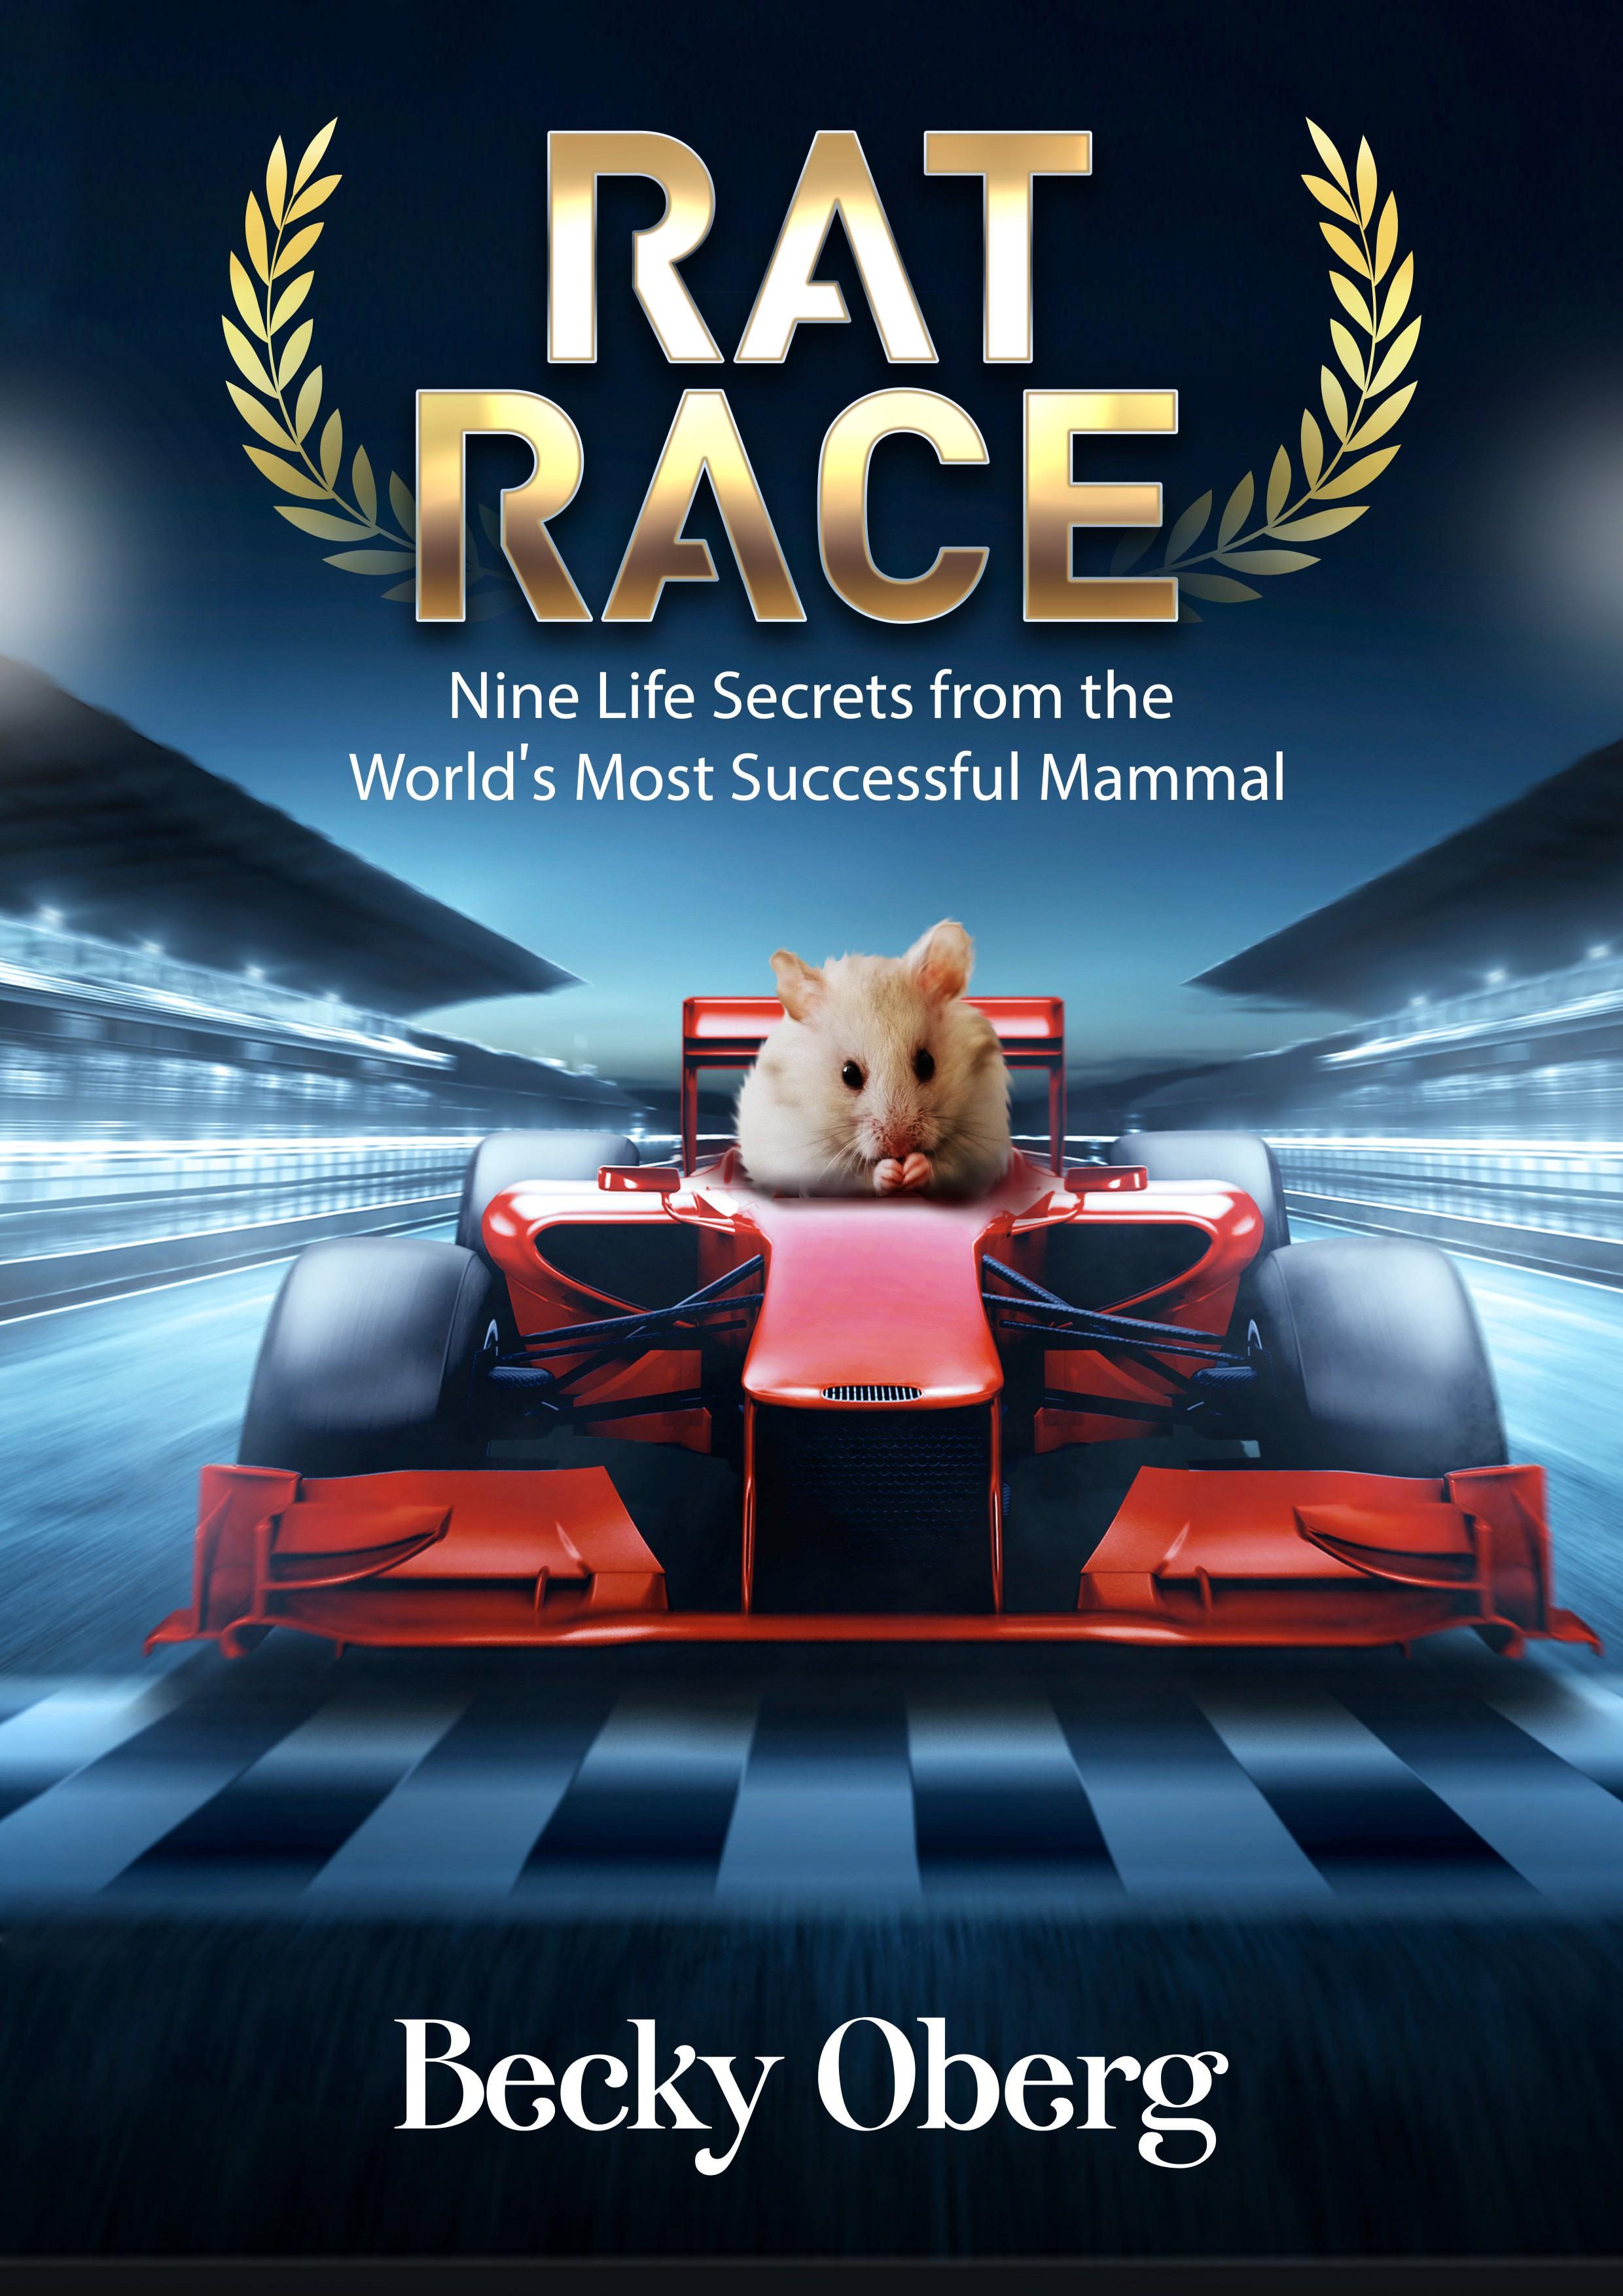 Rat Race e-book: Can you create a compelling cover featuring the world's most misunderstood mammal?